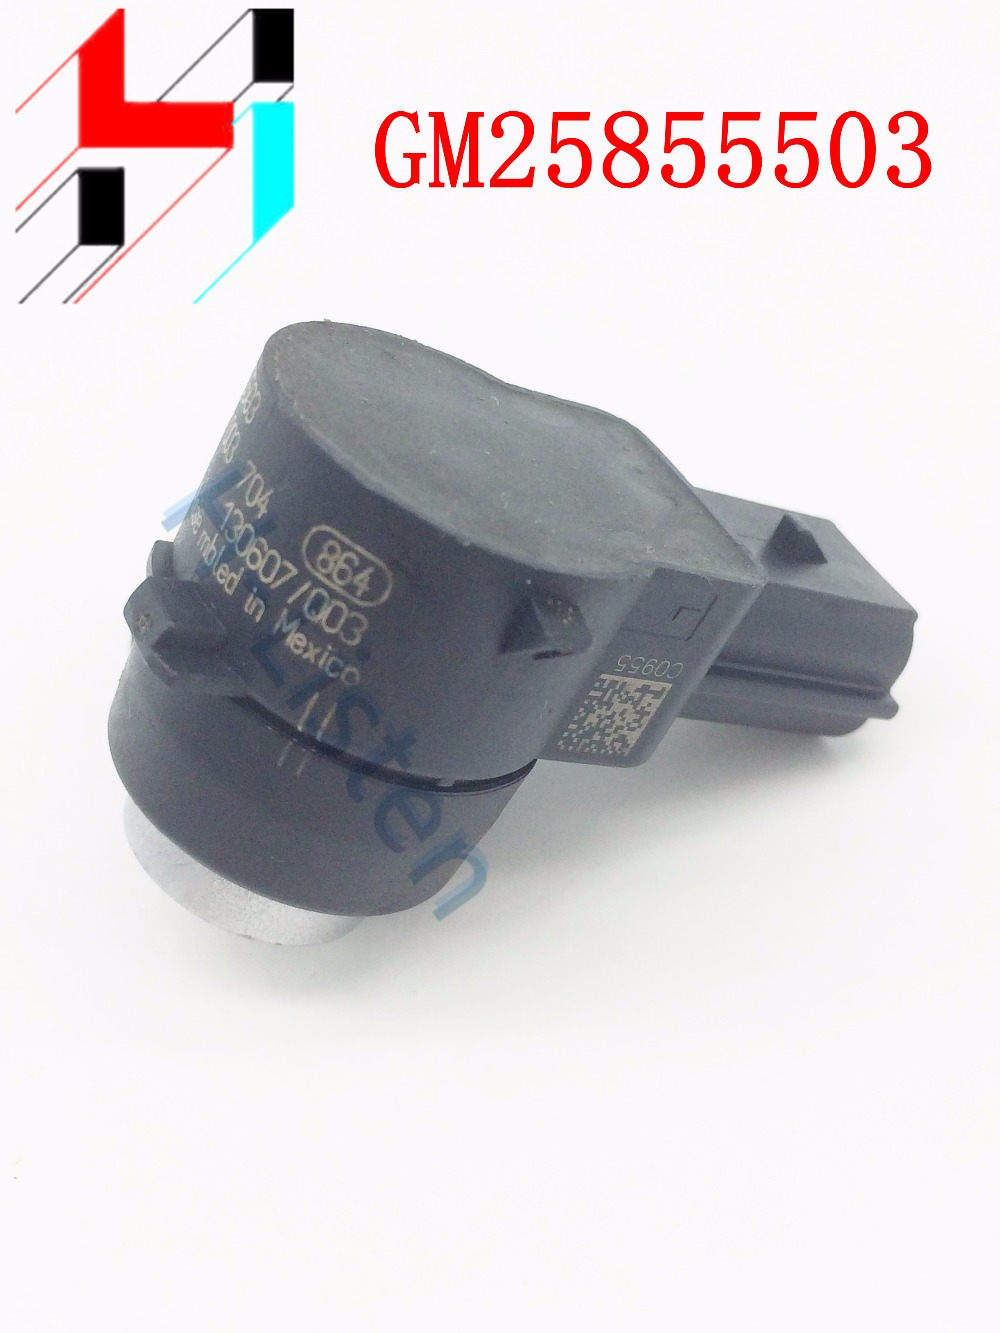 25855503 Original Parking PDC Ultrasonic Sensor Reverse Assist for G M C ruze O pel C adillac OE#0263003704 пальто alina assi пальто длинные